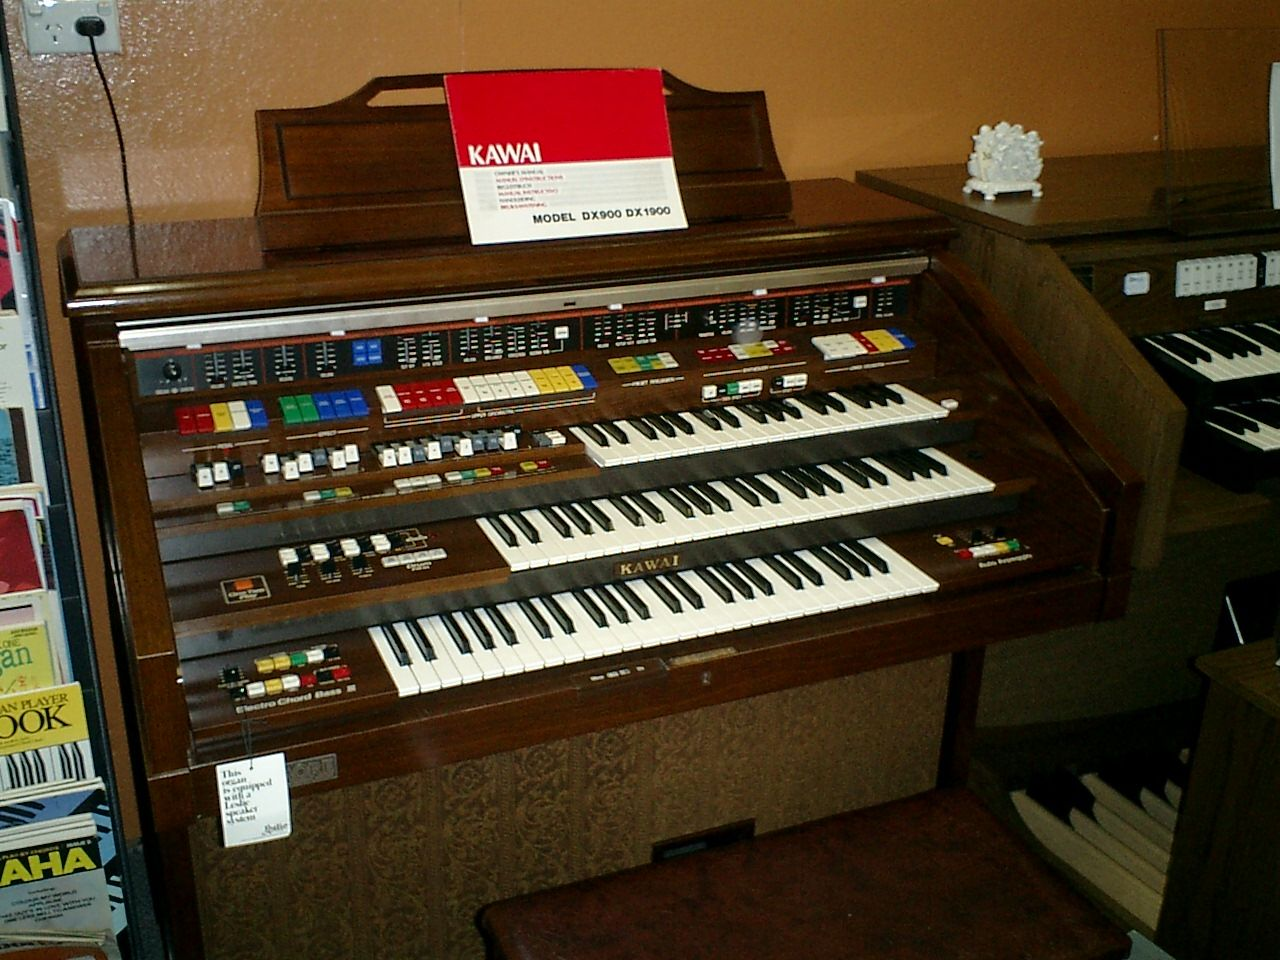 KAWAI DX900 Organ This electronic spinet organ in excellent condition,with  3 keyboards and 13